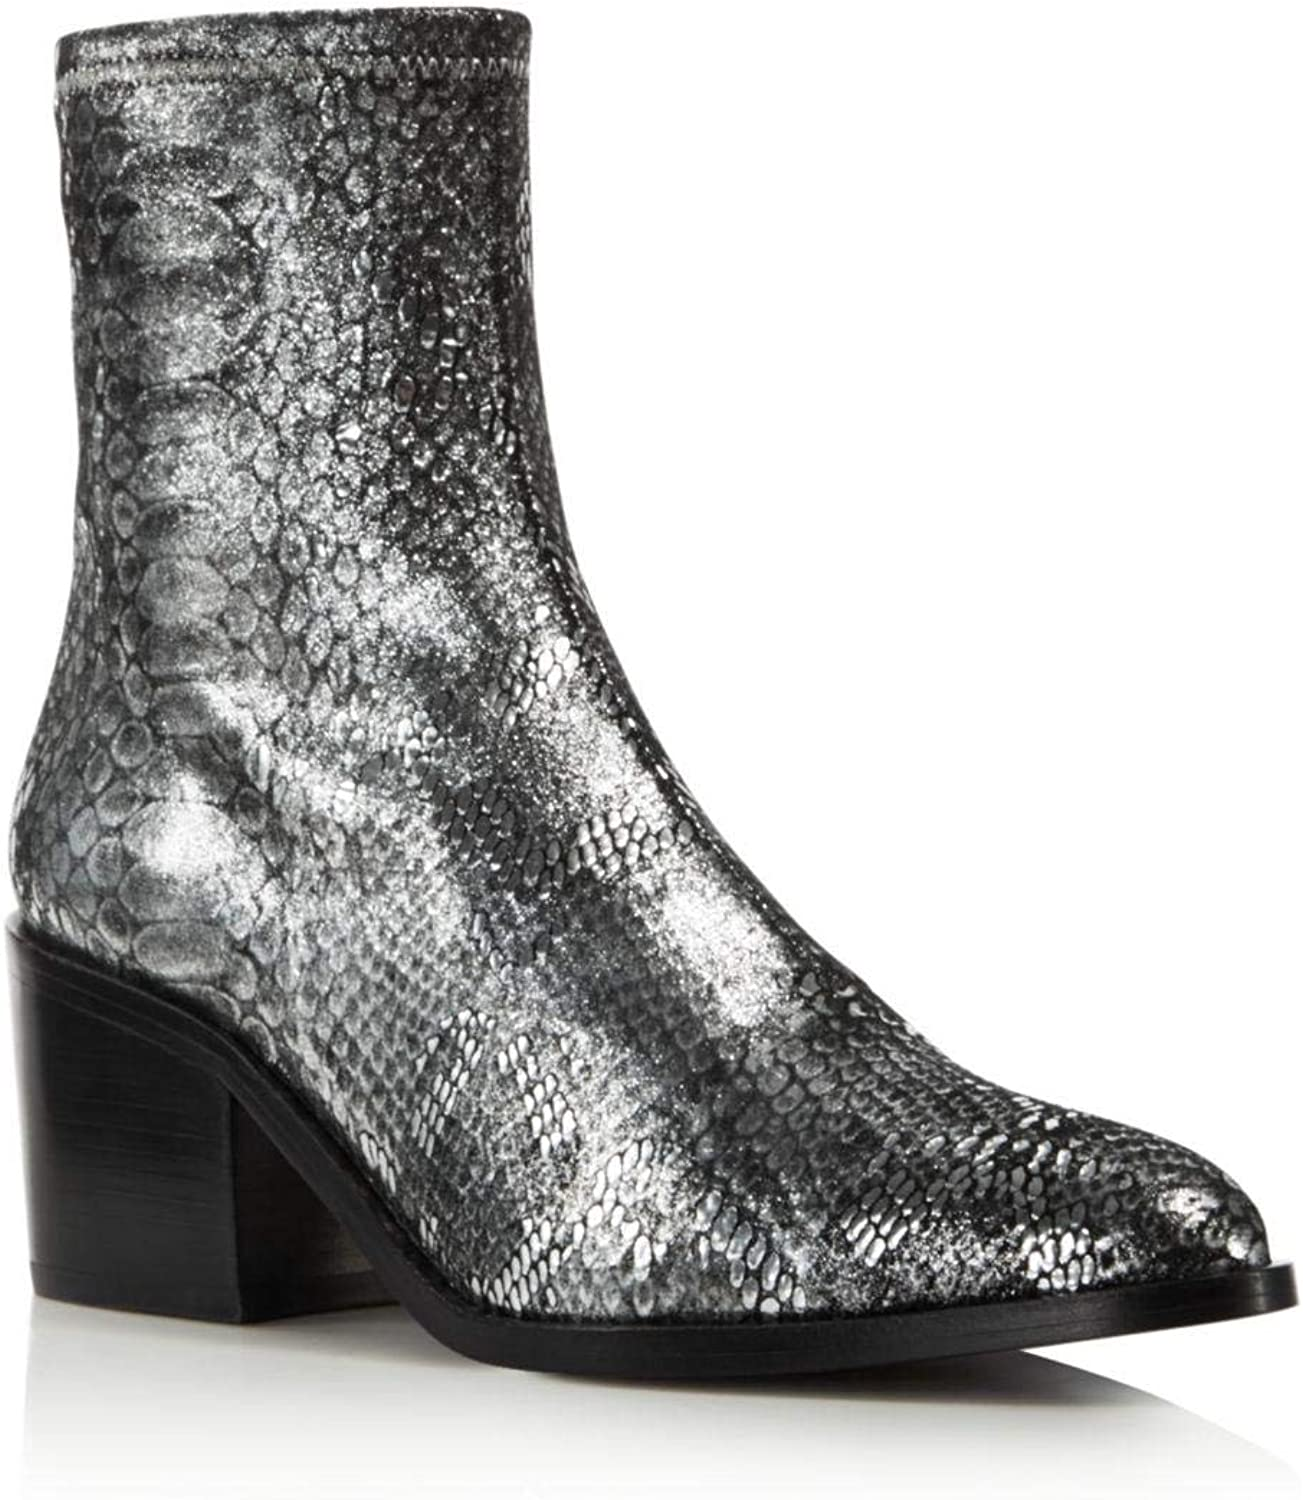 Opening Ceremony Womens Livv Snake Closed Toe Mid-Calf Fashion Boots